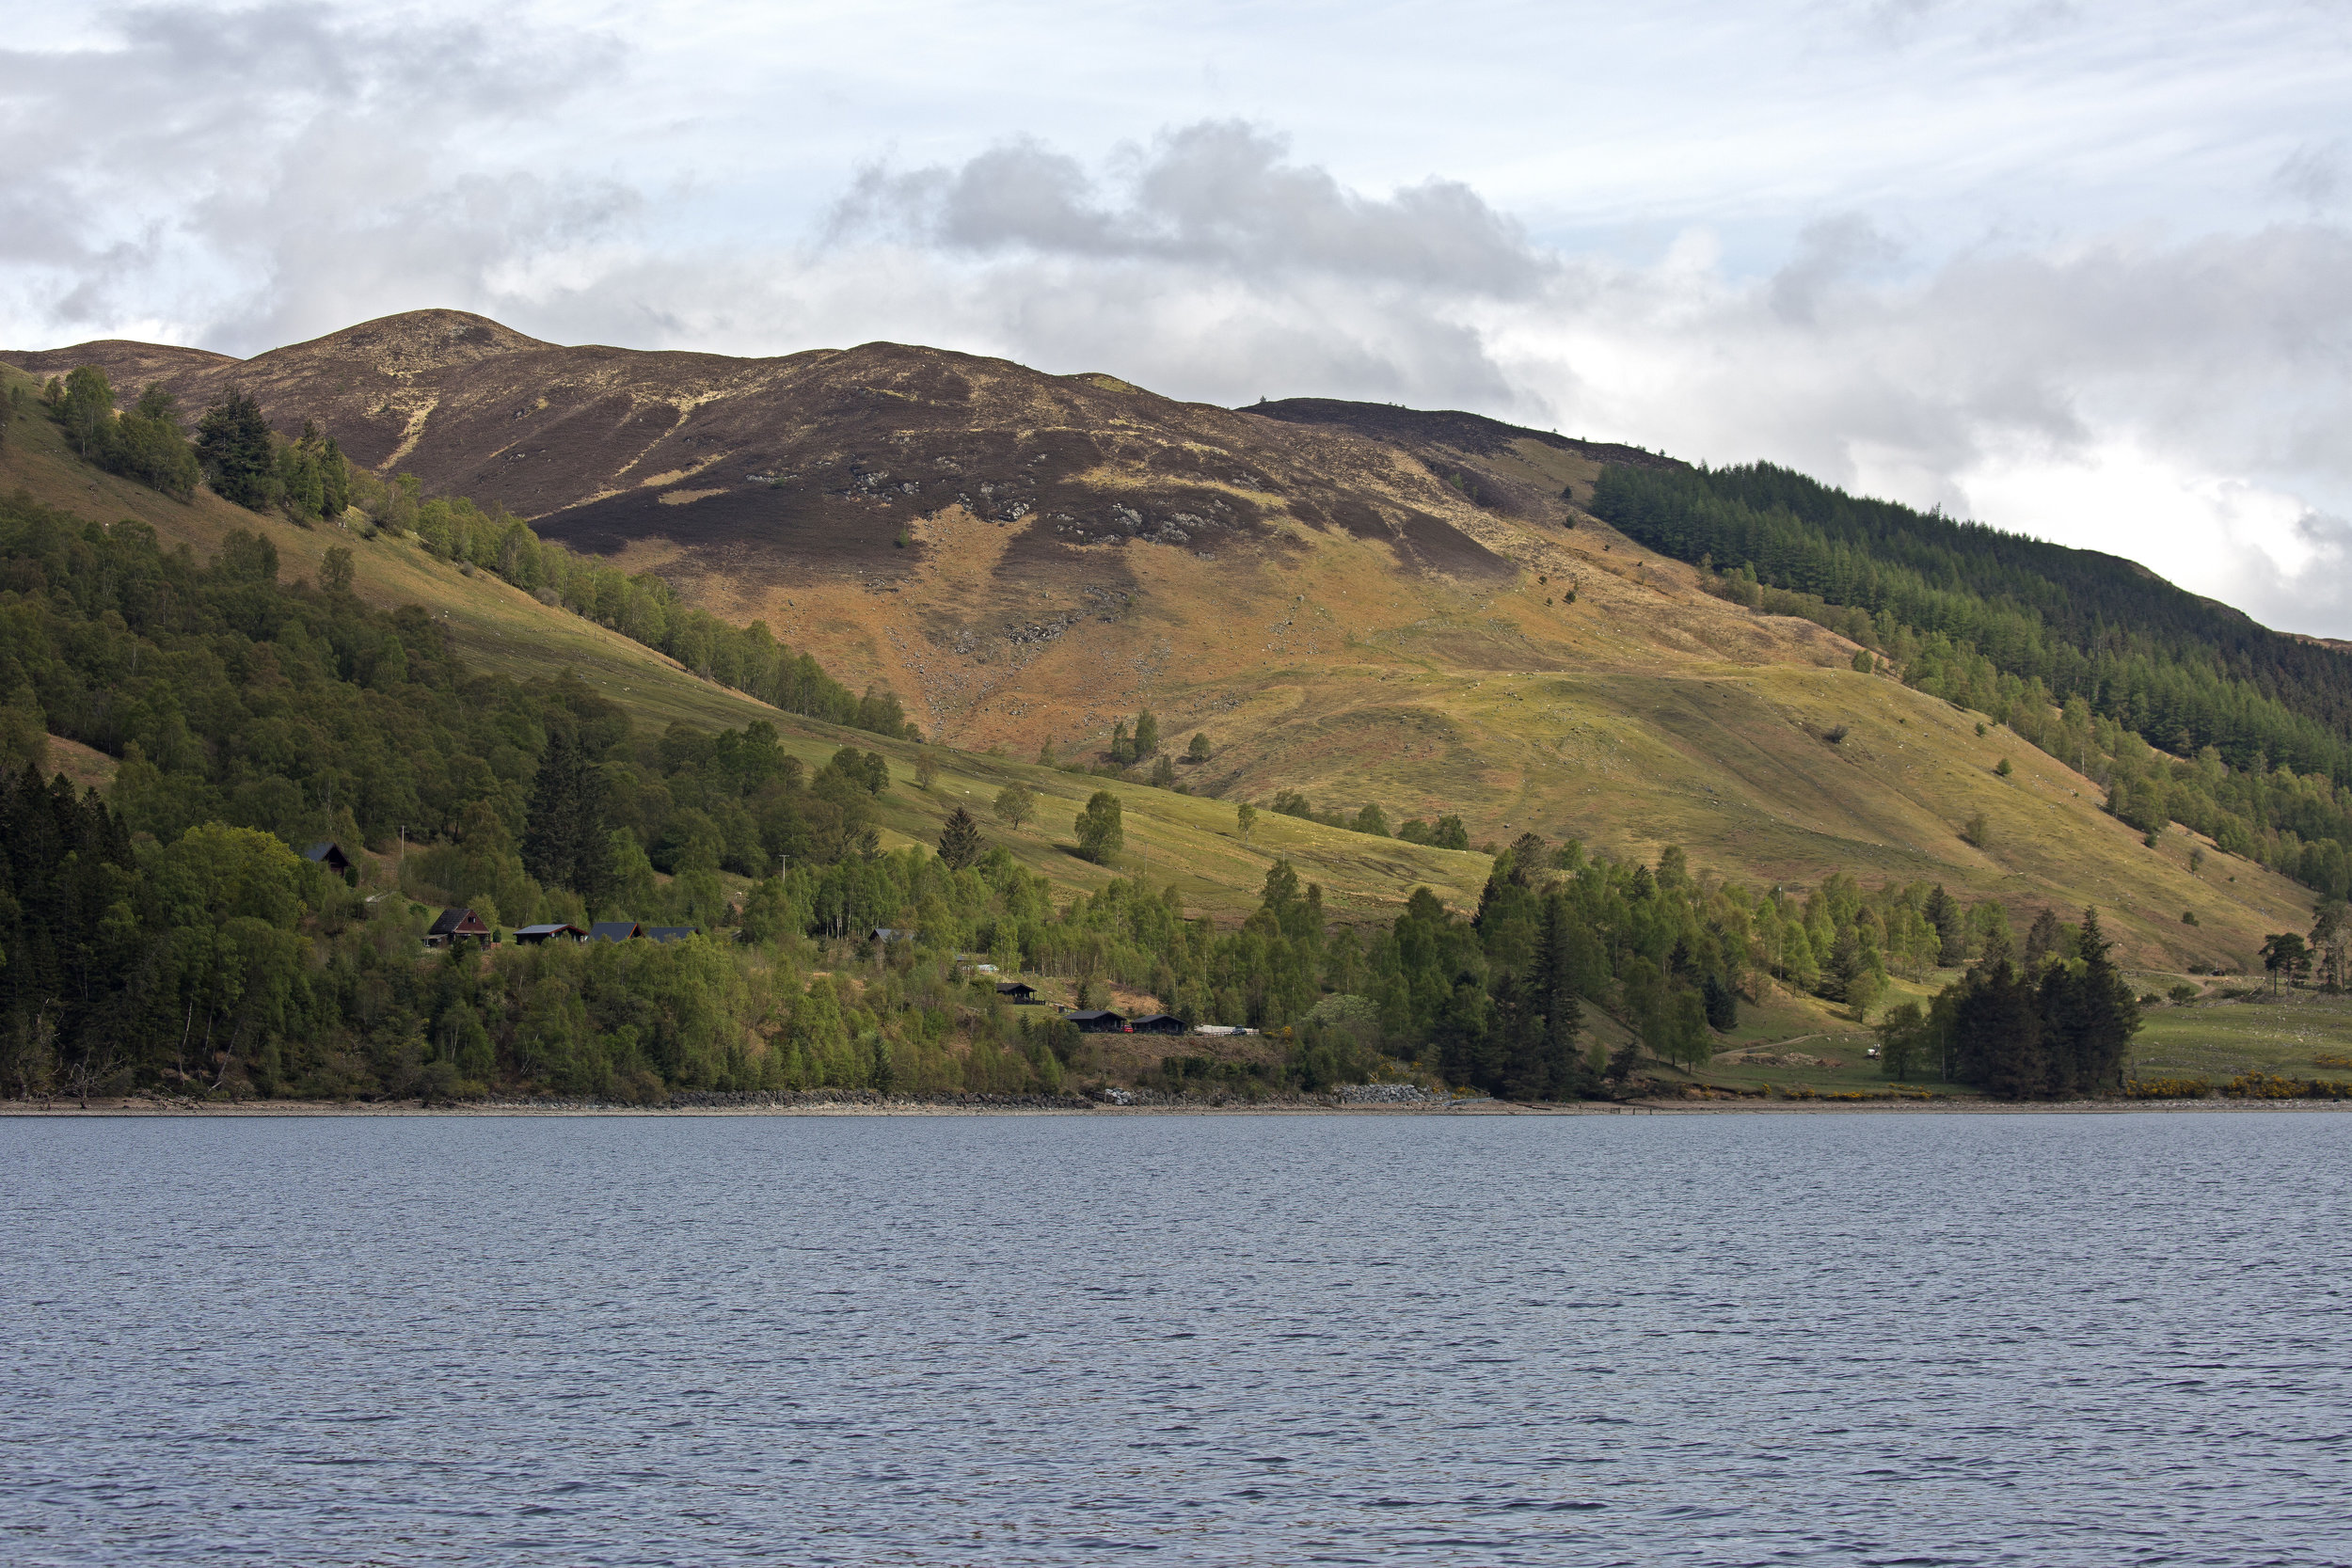 The scenery and weather while we're on Loch Lochy is beautiful.  It's actually kind of hot out ;)